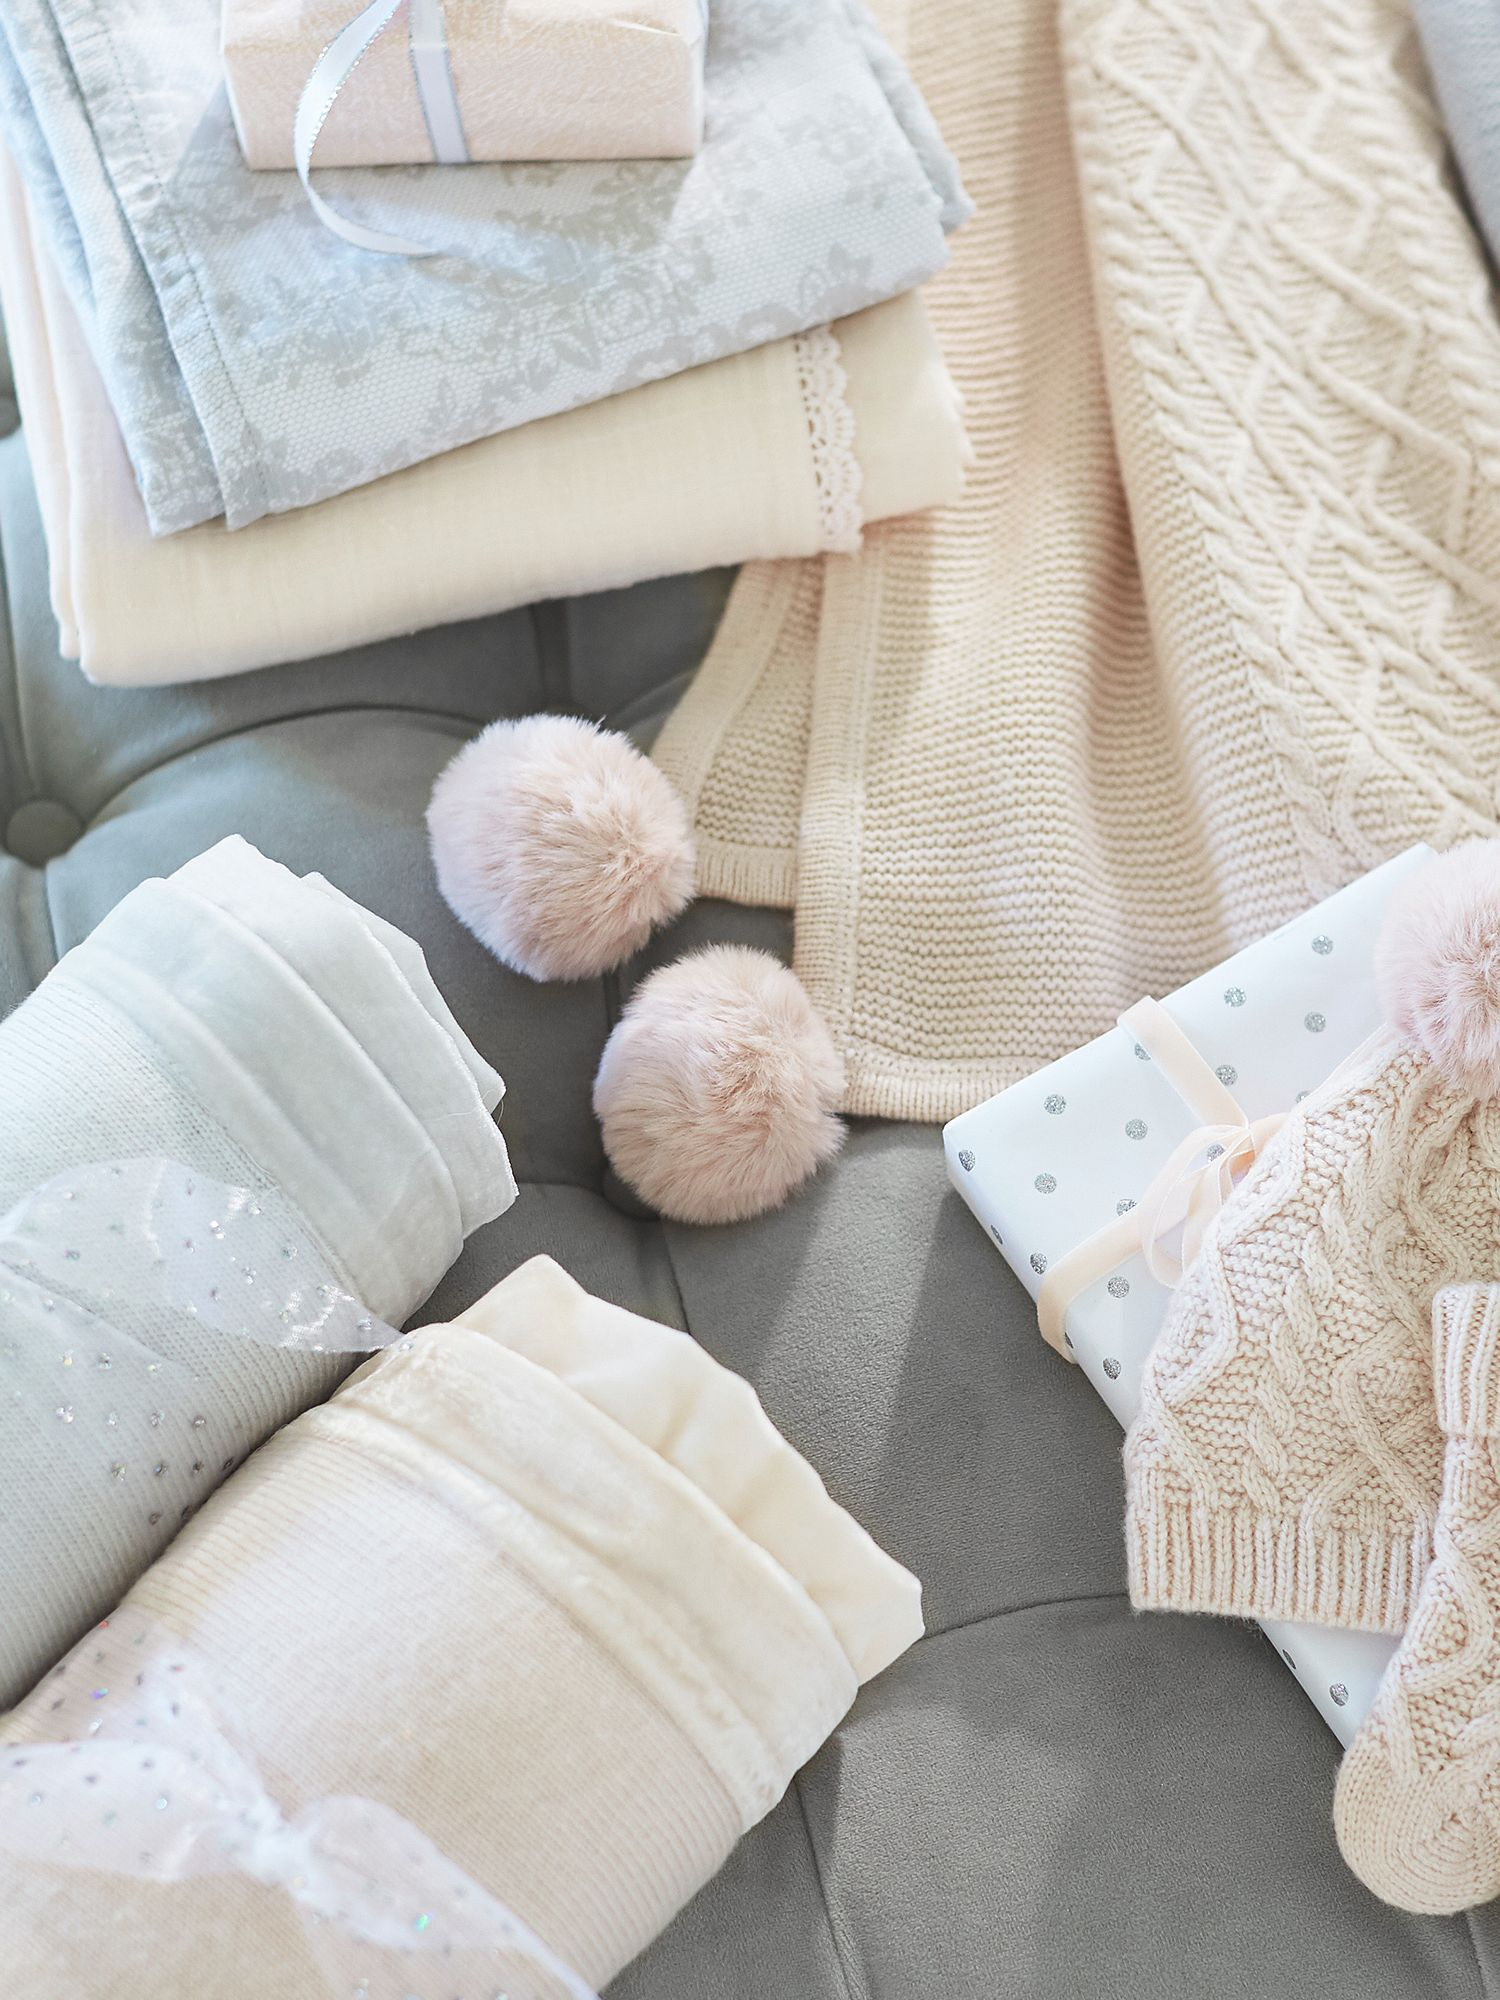 Pottery Barn Kids Cable Knit Pom Pom Baby Blanket Ivory At John Lewis Partners